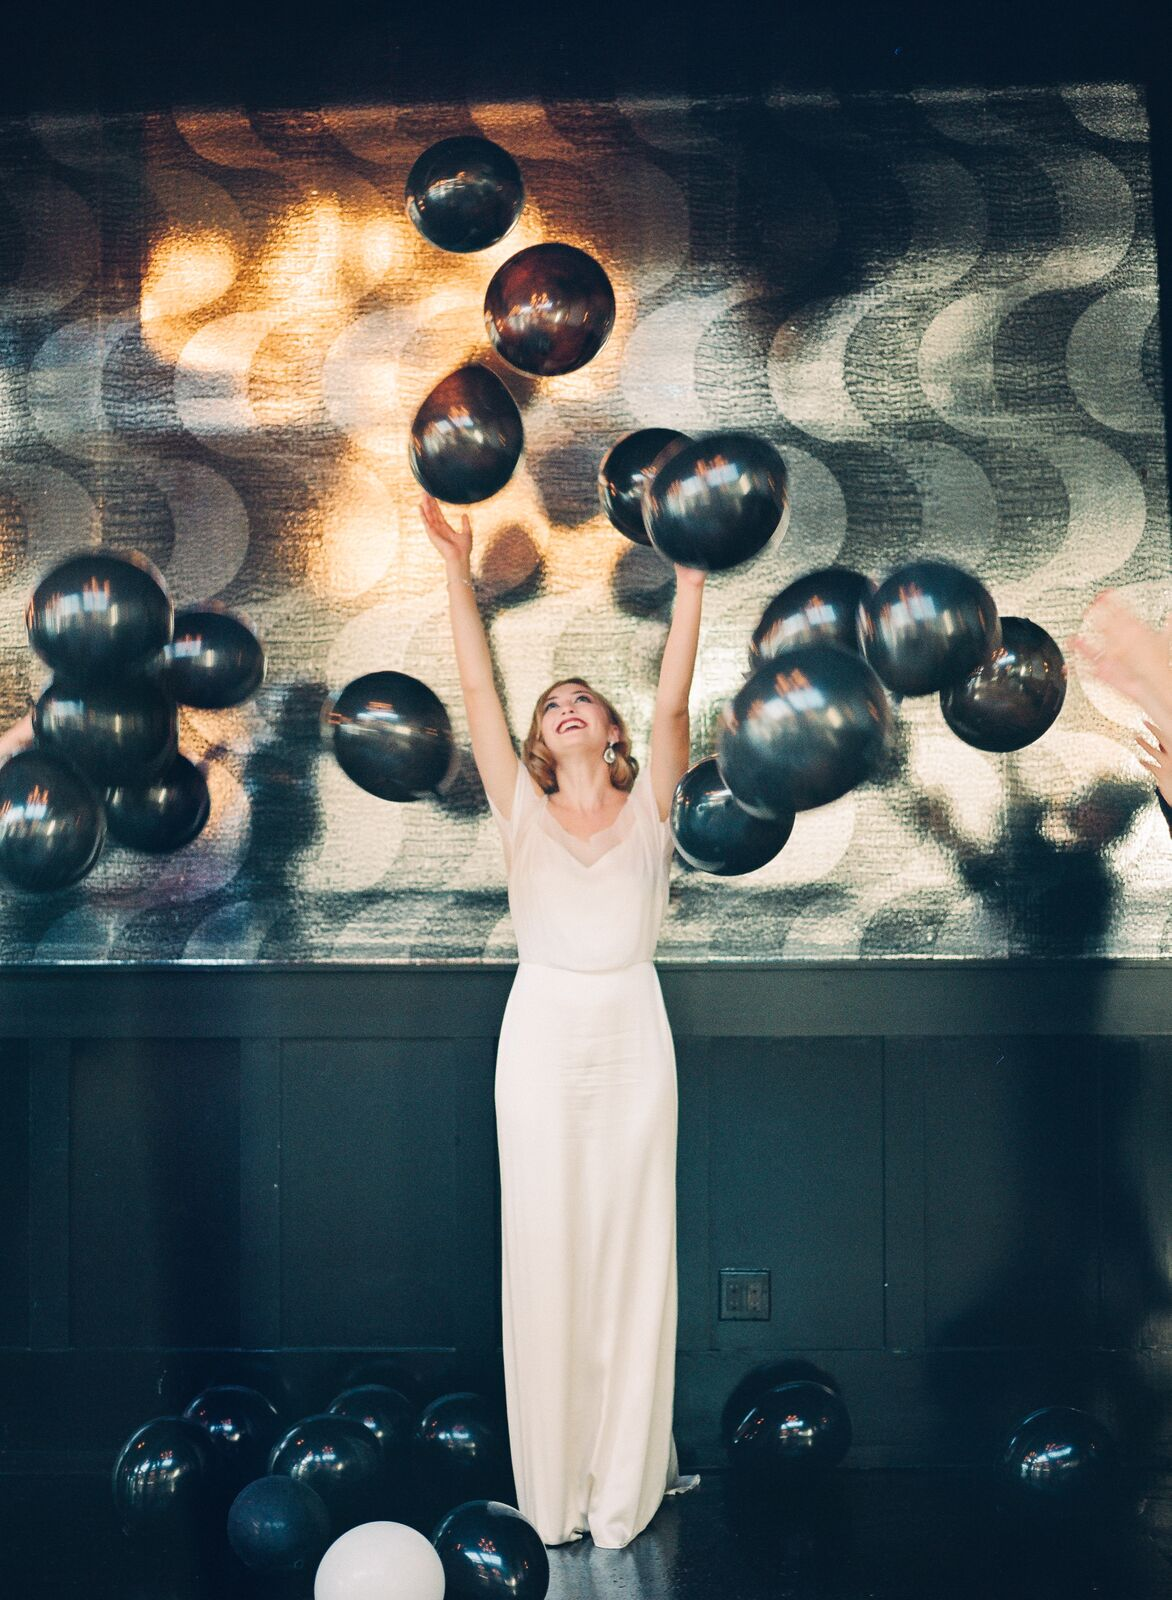 Photography:  Mariel Hannah / Creative Direction + Styling:  Mandy Forlenza Sticos / Venue:  501 Union / Dress:  Saja Wedding / Veil:  Amalee Accessories / Shoes, Earrings + Bracelet:  Nina Shoes / Hair:  Katelyn McGinn / Makeup:  Jha Villanueva / Cake:  Made in Heaven Cakes / Sequin Linens:  Candy Crush Events / Invitation Suite:  Fleur de Letters / Ribbon:  Silk + Willow  / Vintage Props:  Little Vintage Rentals  / Clay Feather:  Anny Made  / Model:  Emma